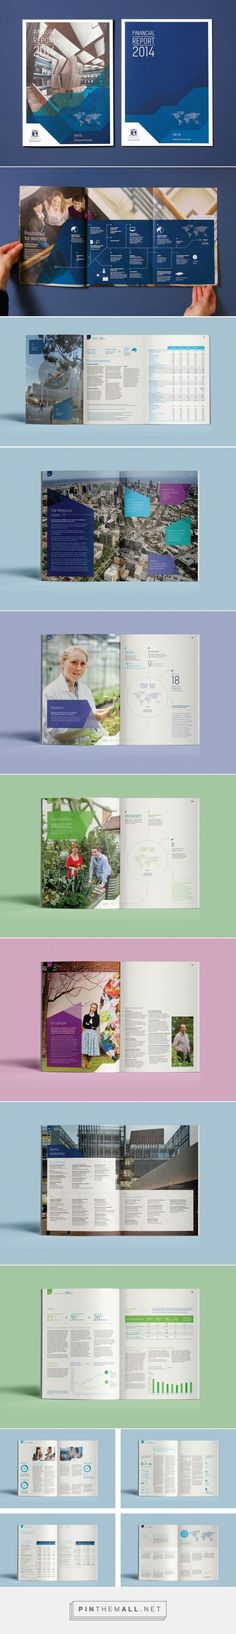 University of Melbourne Annual Report - Studio Binocular - created on Design Brochure, Booklet Design, Brochure Layout, Graphic Design Tips, Web Design, Layout Design, Annual Report Layout, Annual Reports, Annual Report Covers